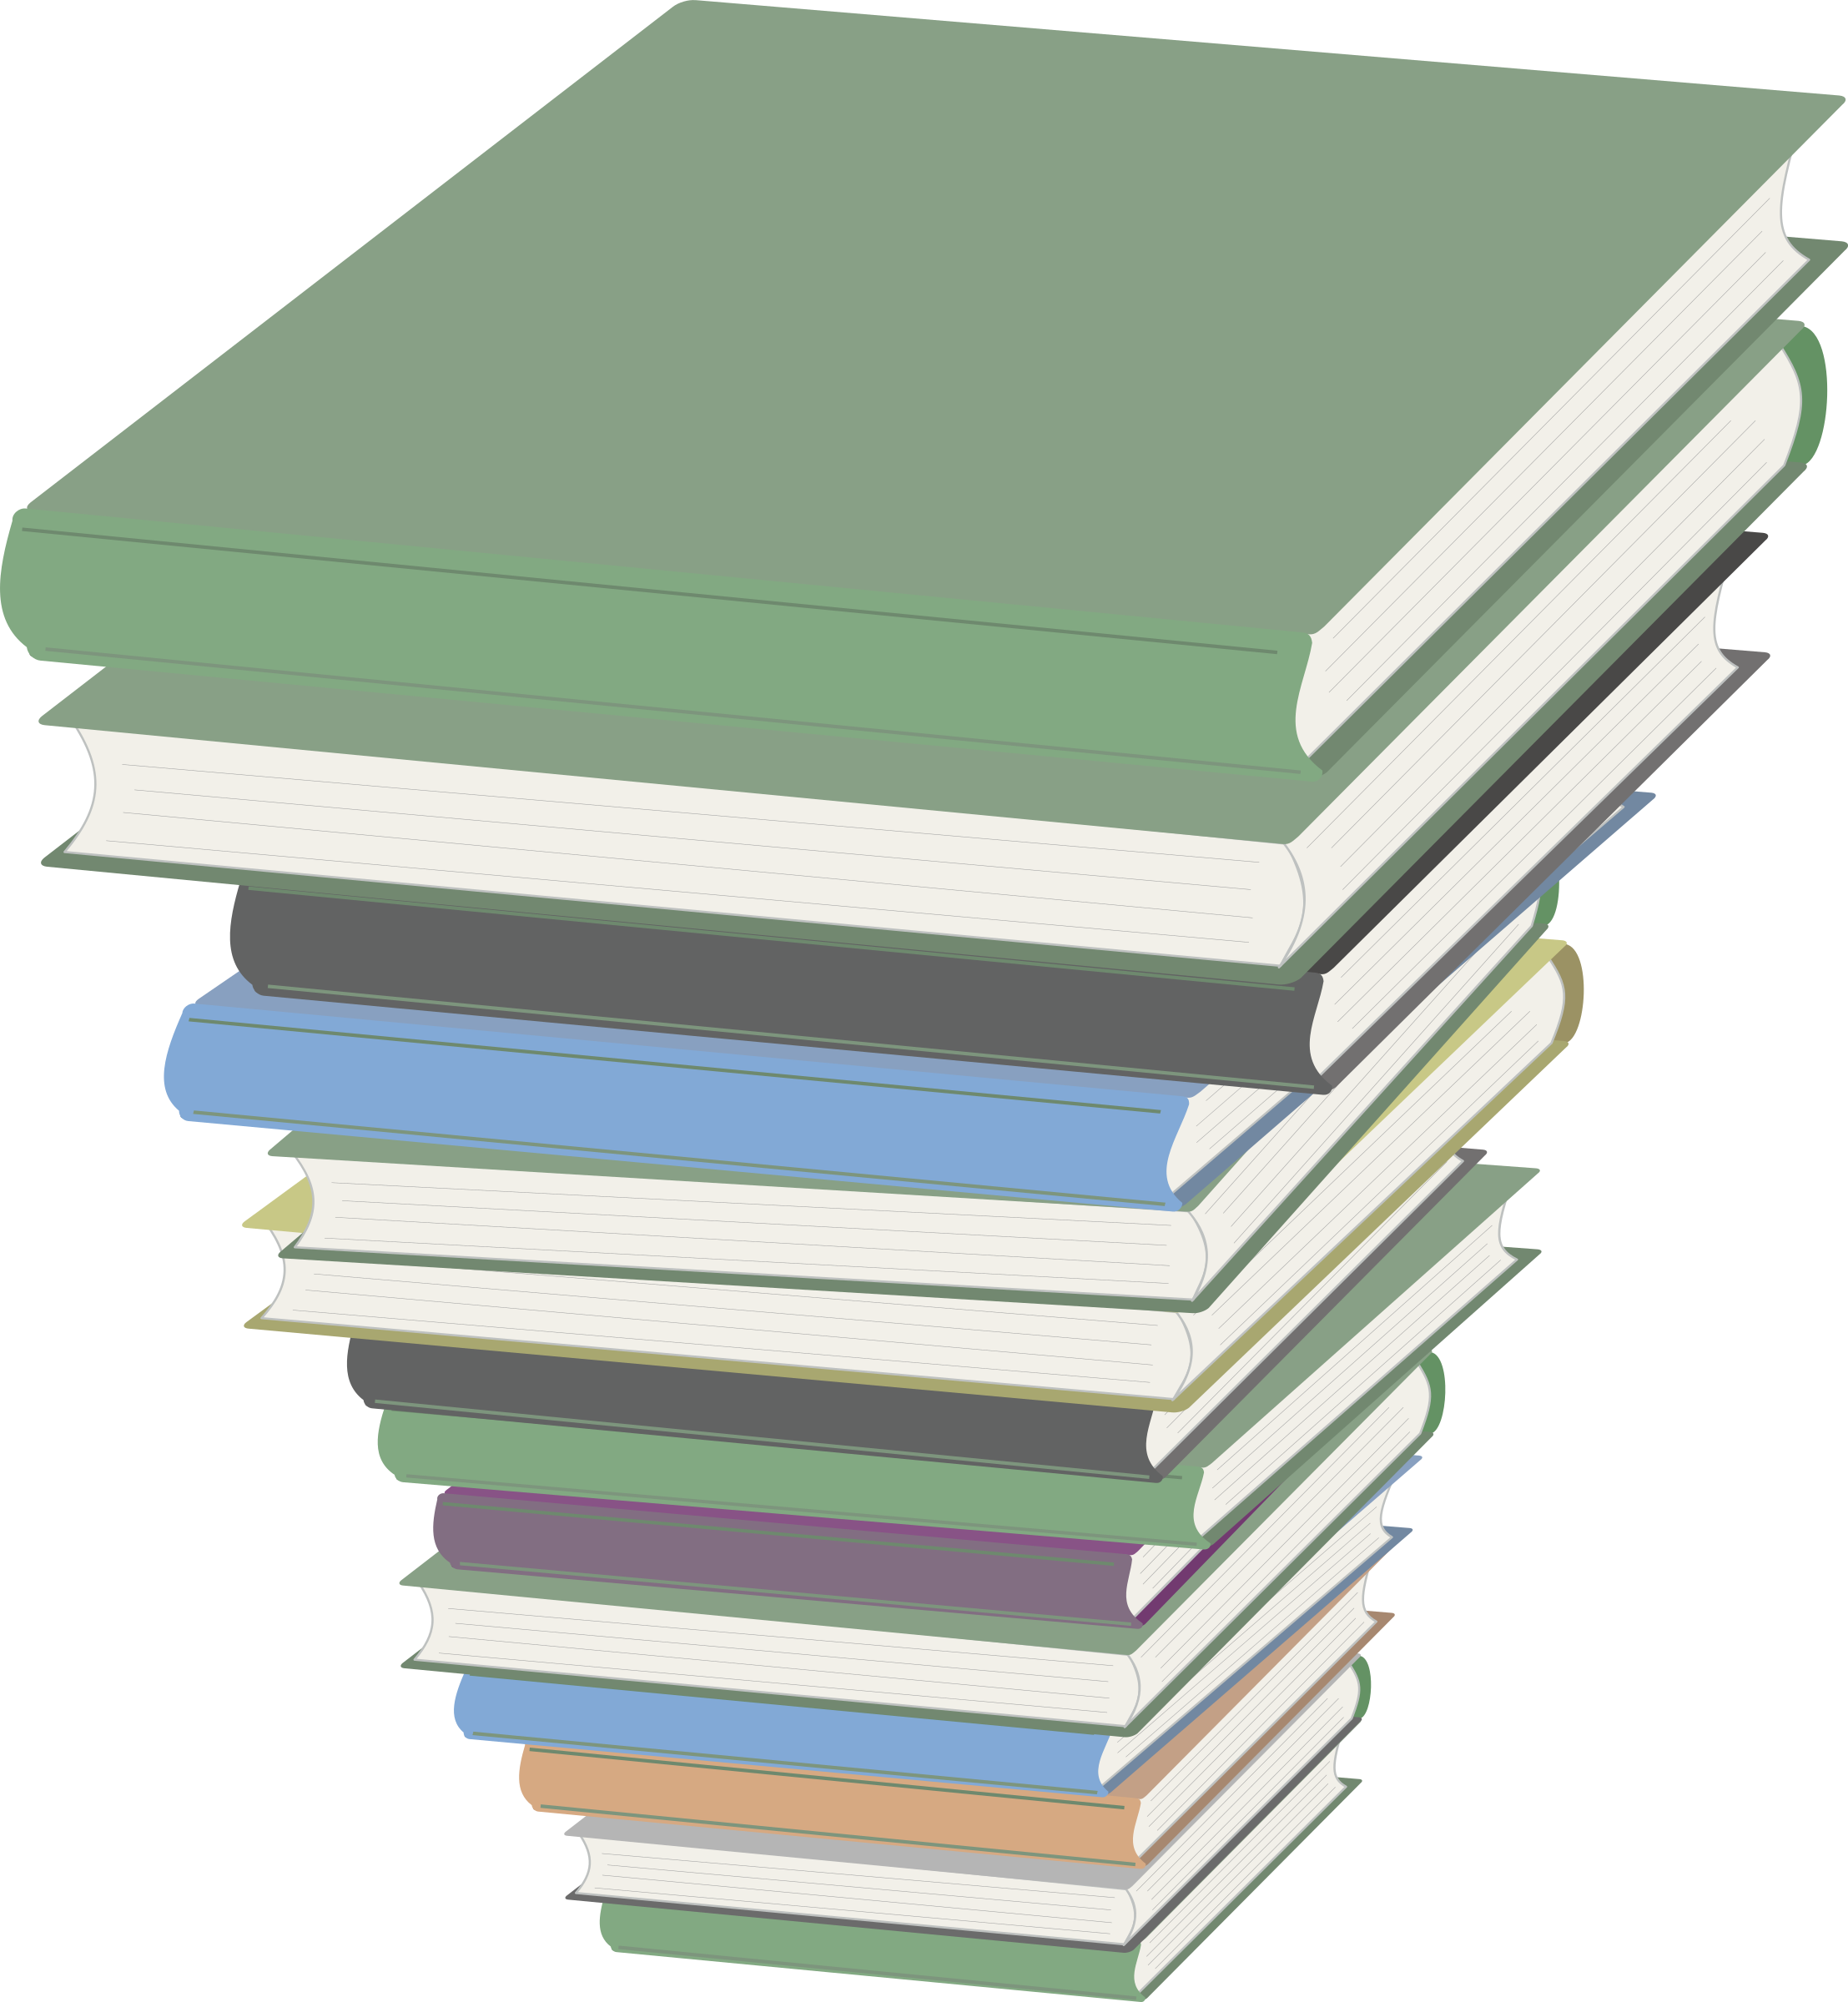 Clipart book stack jpg free stock Clipart - Pile of Books jpg free stock